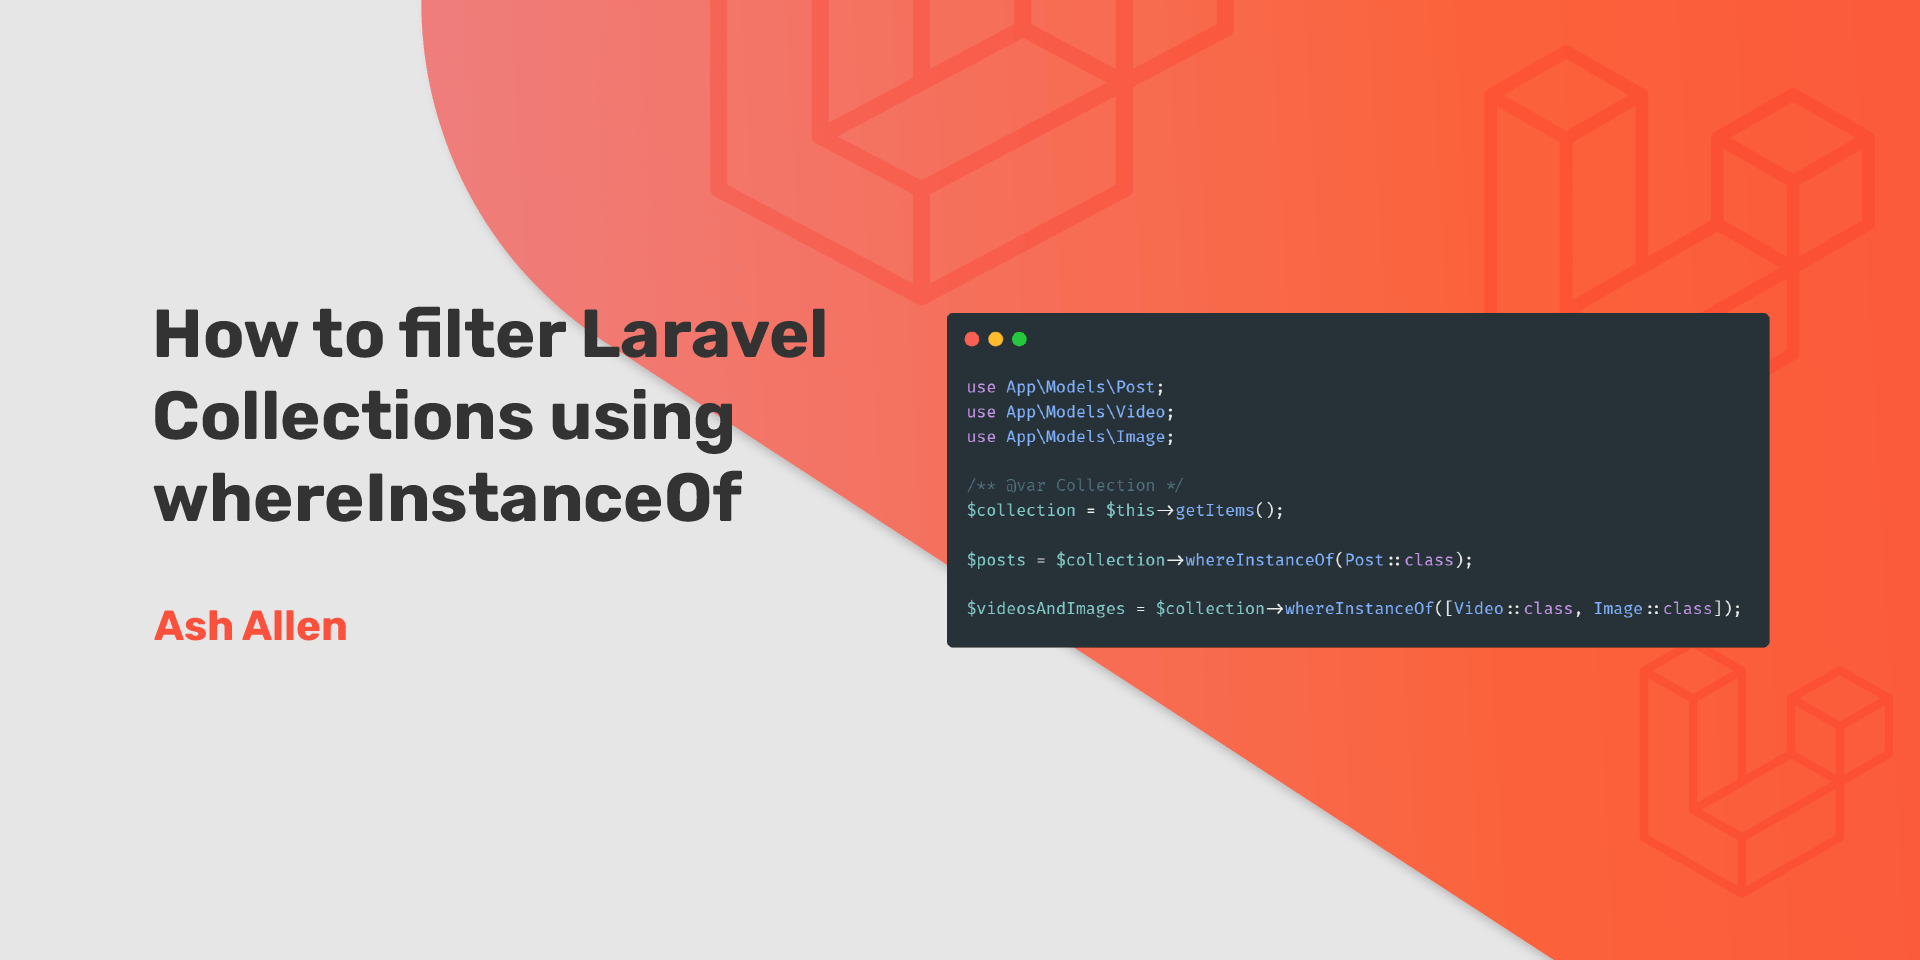 Learn how to use the whereInstanceOf method to filter Laravel Collections. Also check out how the latest changes added in Laravel 8.29 can be used for filtering based on multiple instances rather than just one.